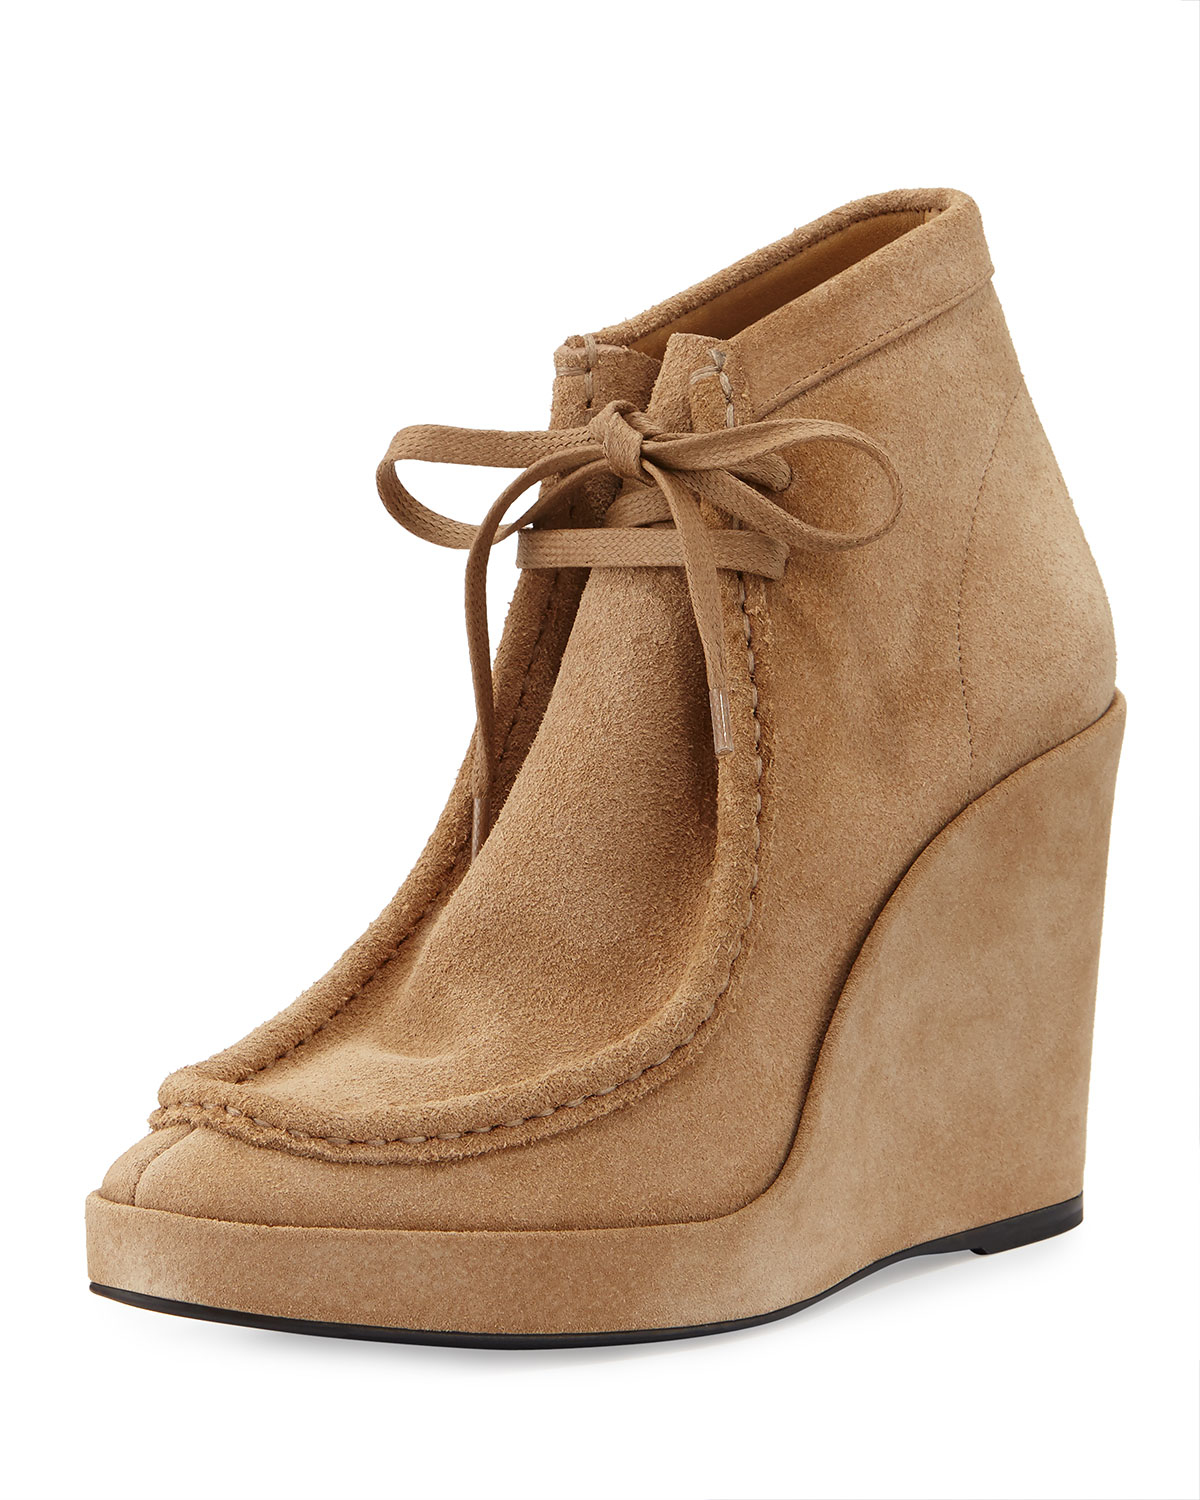 Balenciaga Lace-Front Suede Wedge Boots in Natural | Lyst